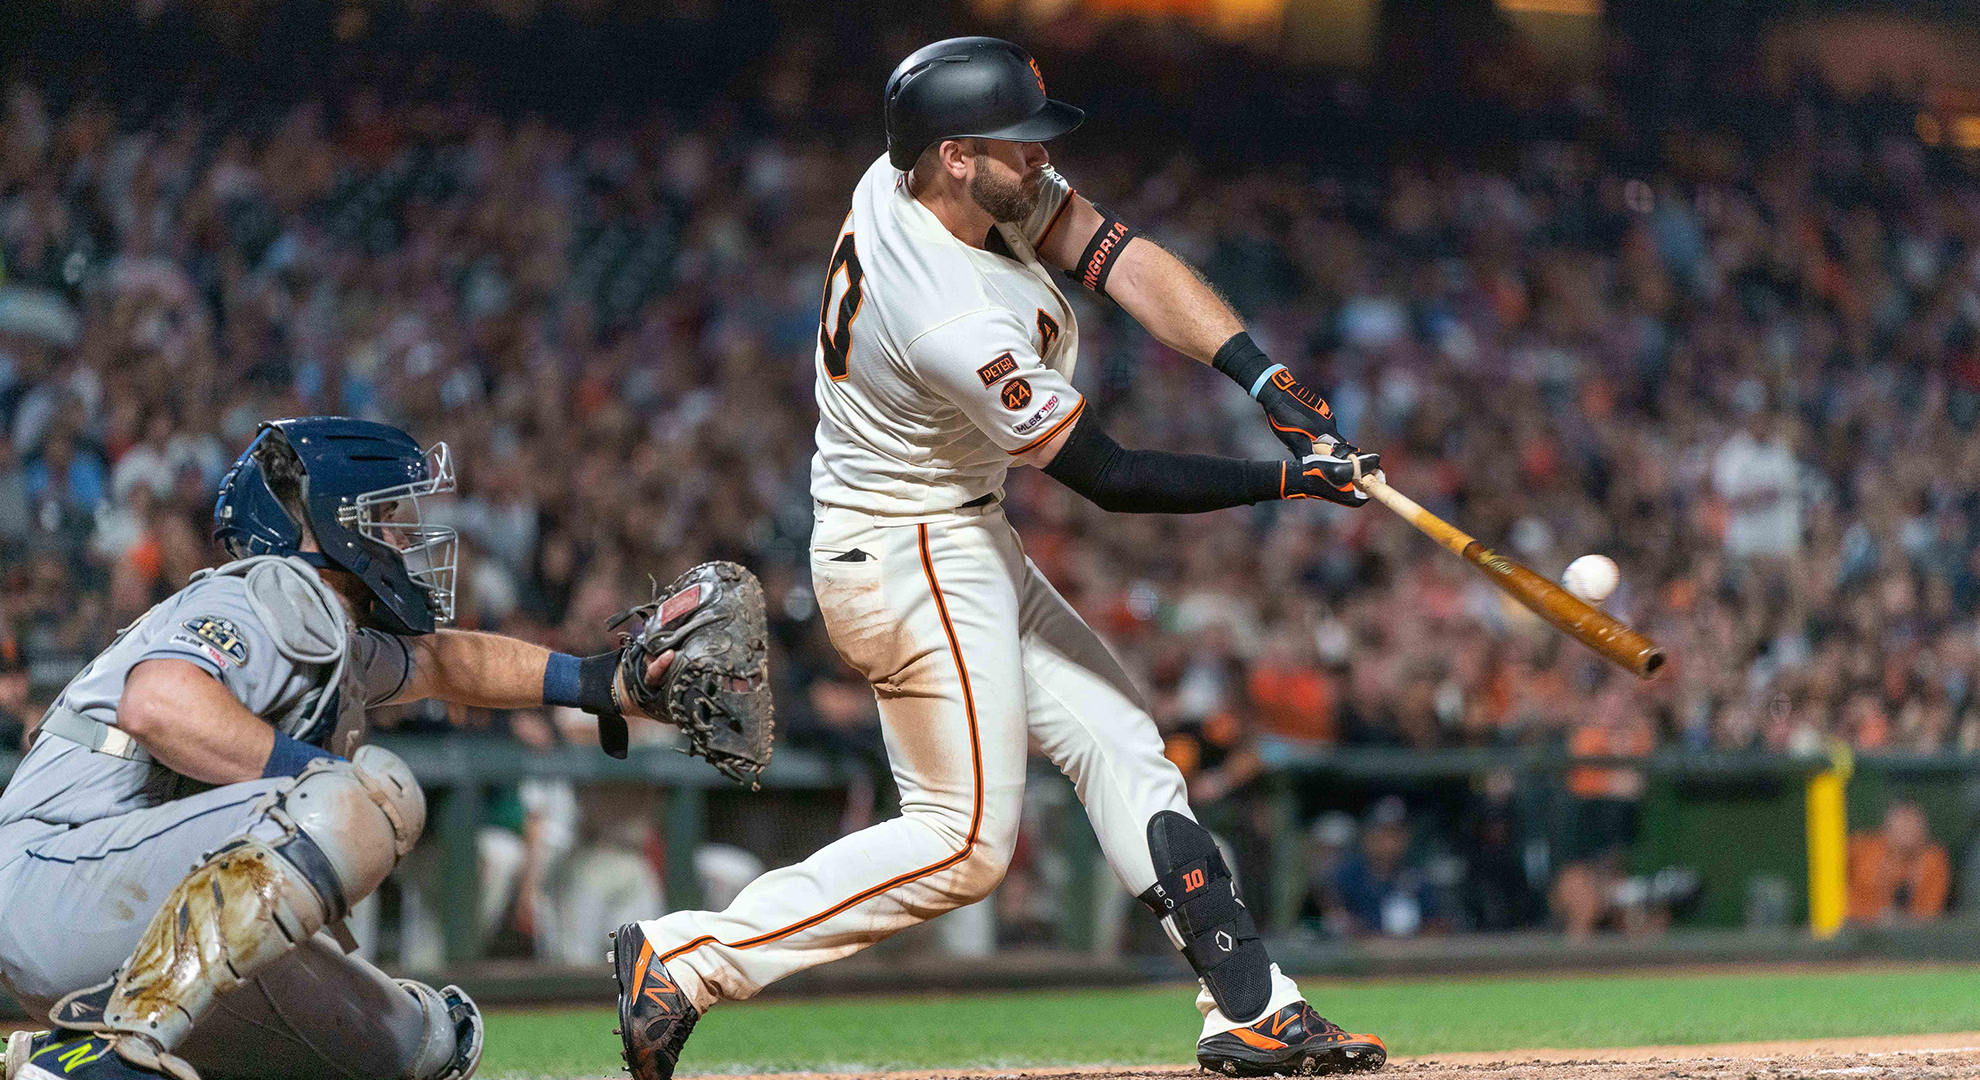 Drive of the Game: Evan Longoria puts Giants in front with two-run double